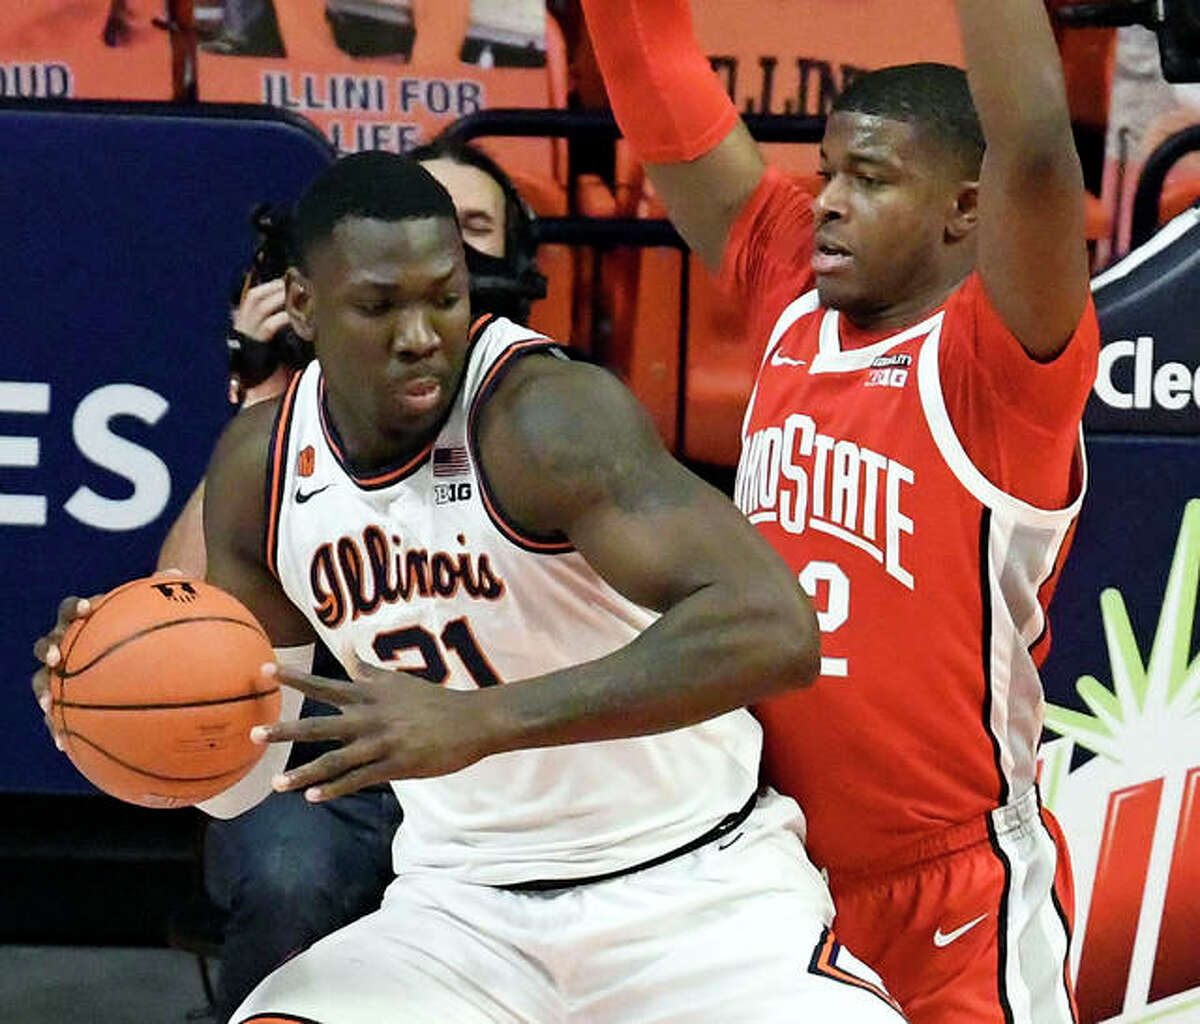 Illinois' Kofi Cockburn (left) is defended by Ohio State's E.J. Liddell during the first half of a Big Ten game Saturday in Champaign.